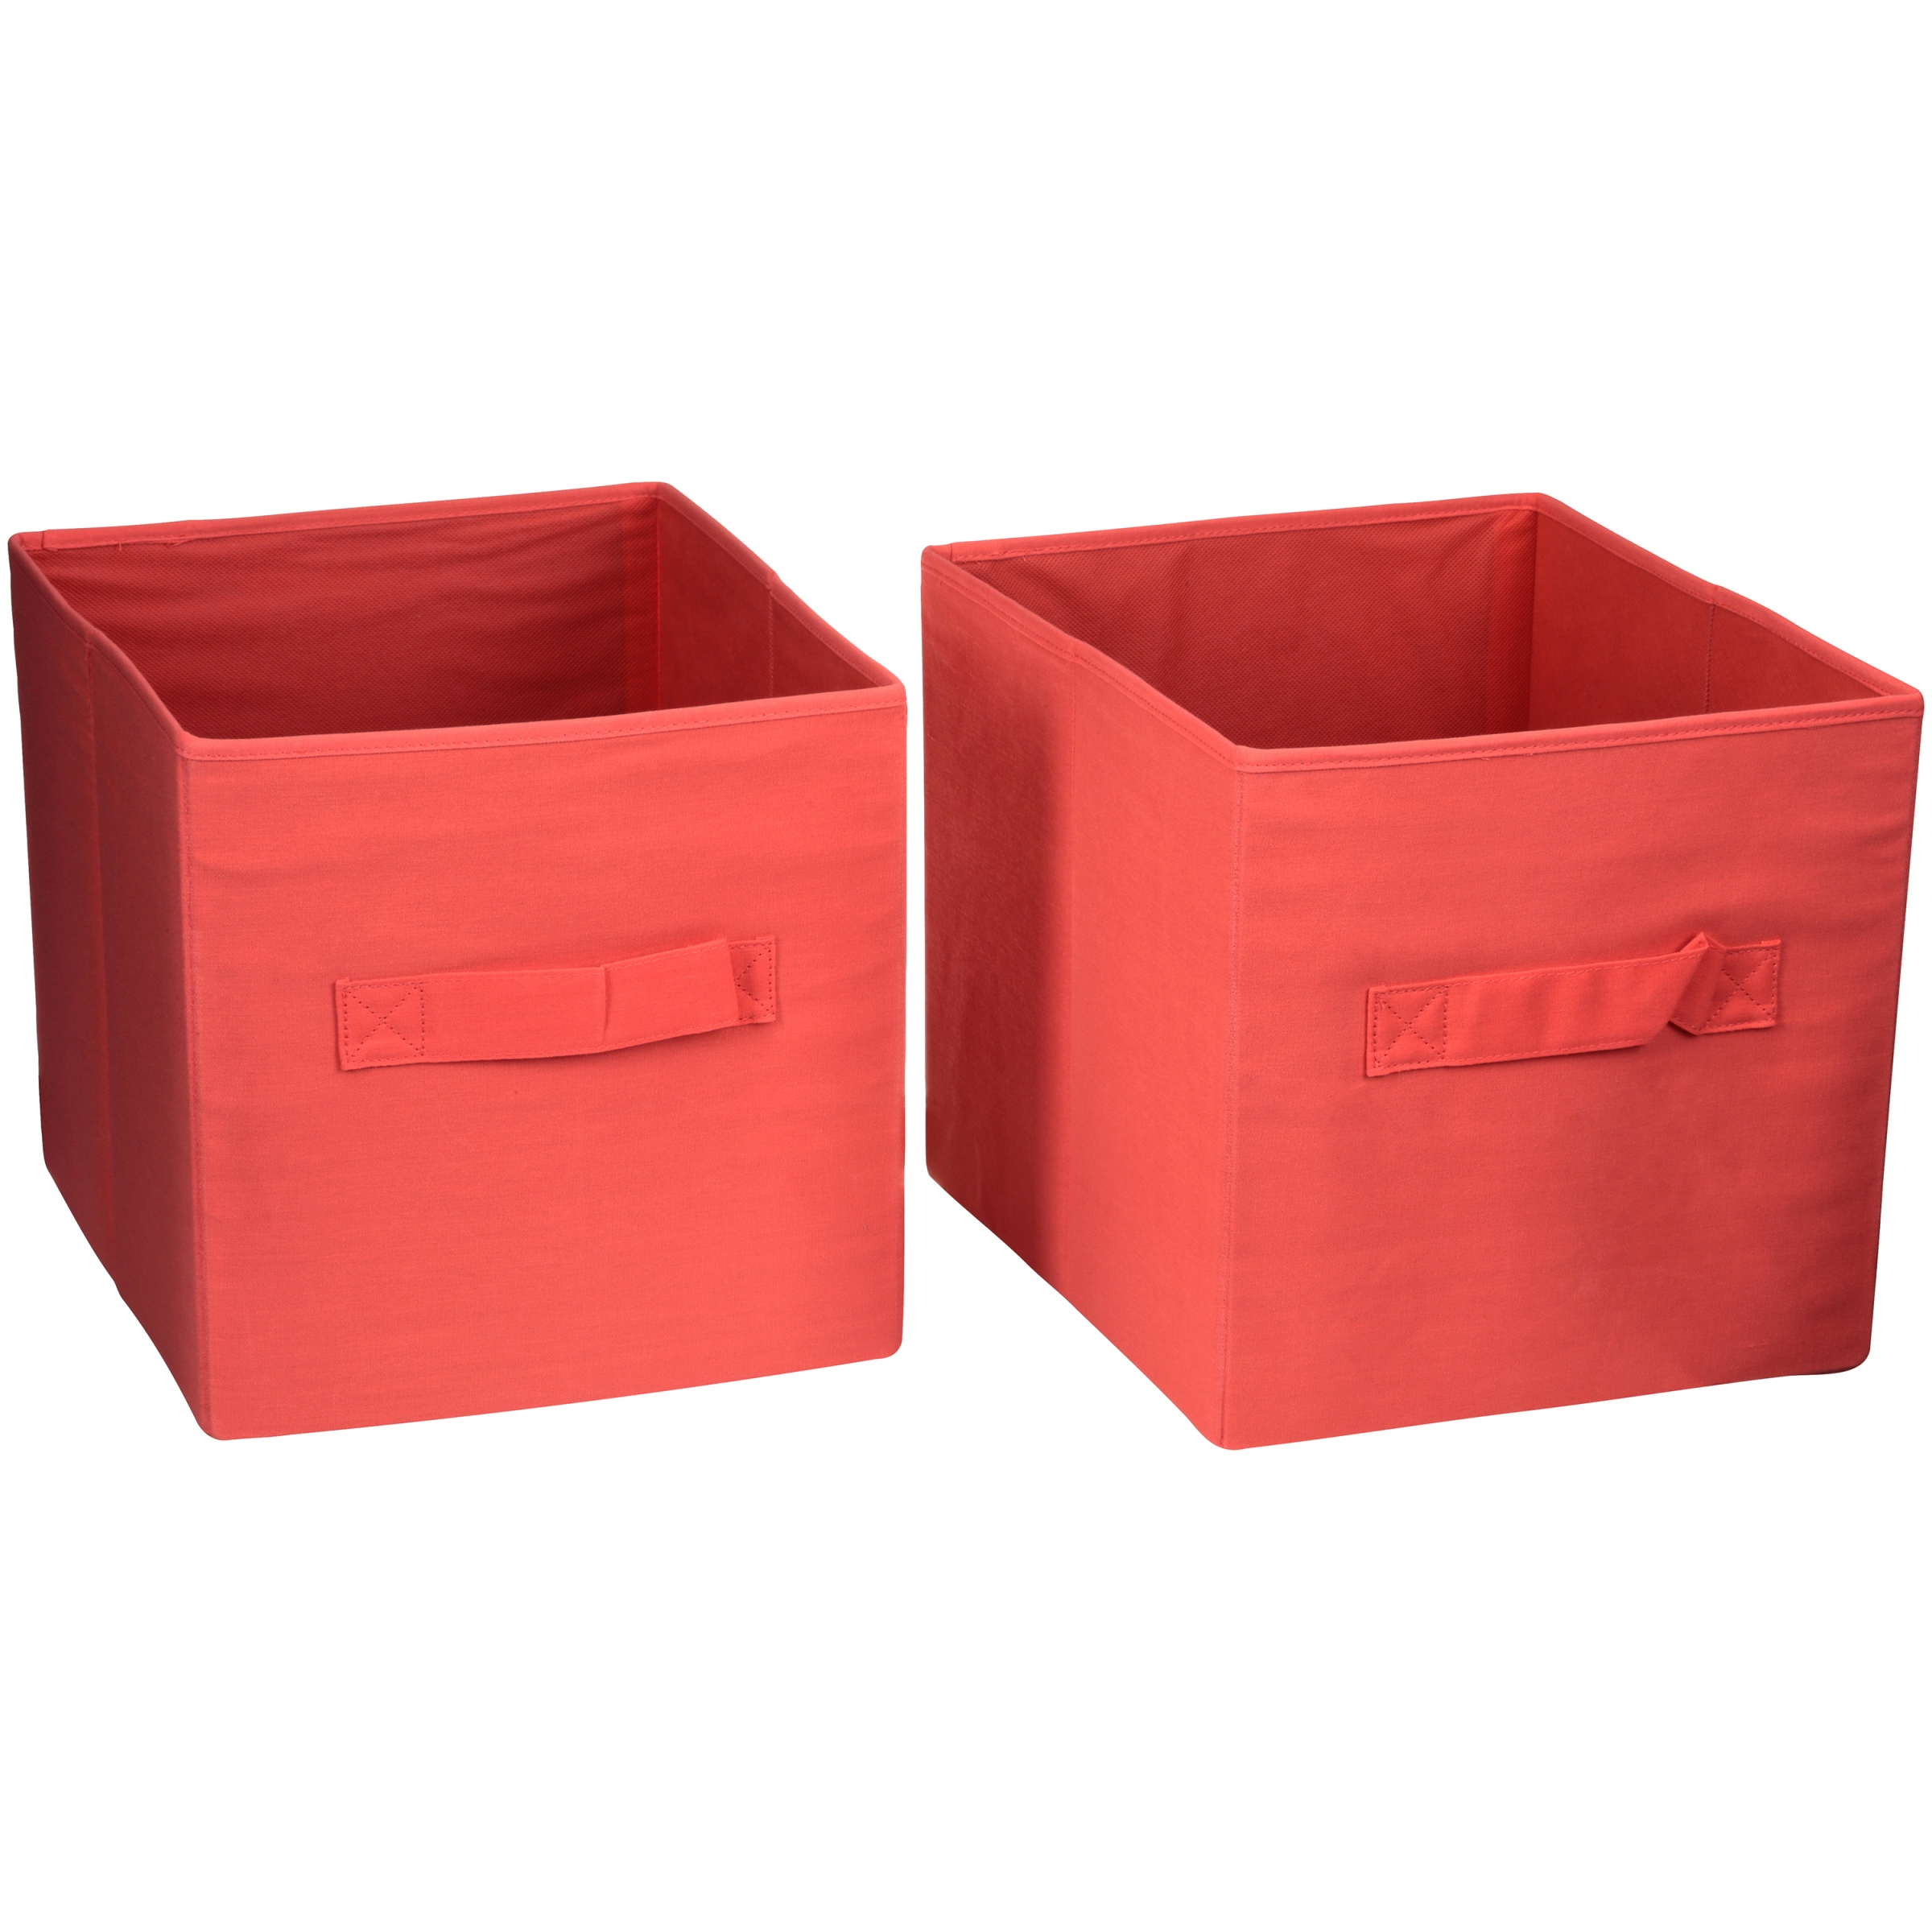 "Better Homes And Gardens 12.8""W x 12.8""D x 15""H Collapsible Fabric Cube Storage Bin, set of 2, multiple... by Imported"